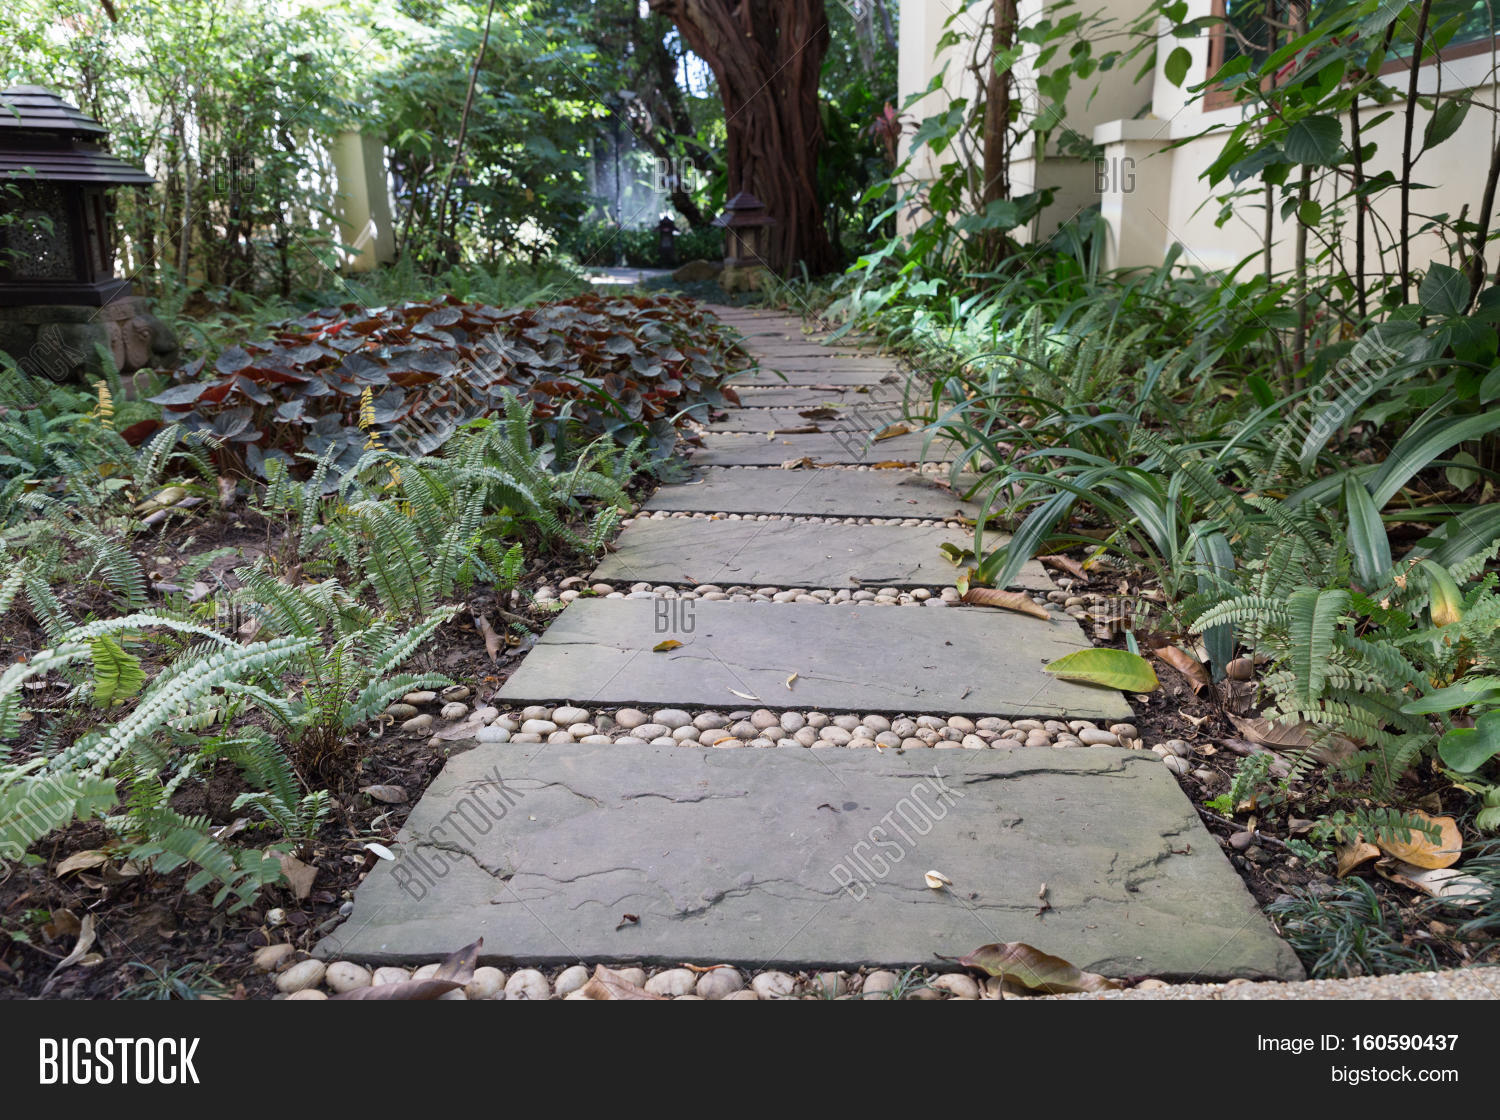 Free Images : landscape, pathway, outdoor, rock, wood, track ...